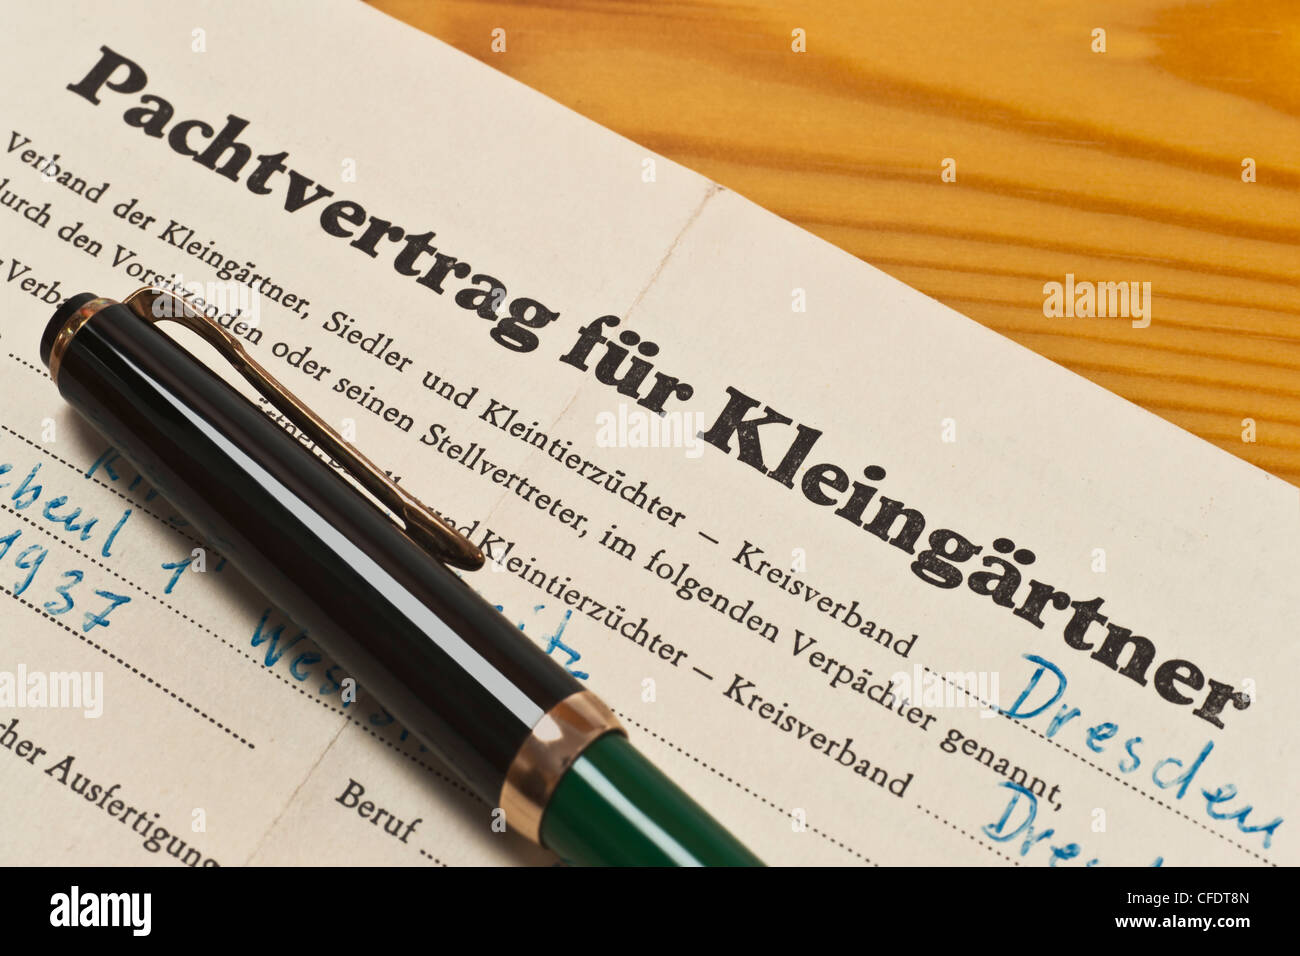 old lease contract for allotment holders from 1968, German language and a fountain pen - Stock Image